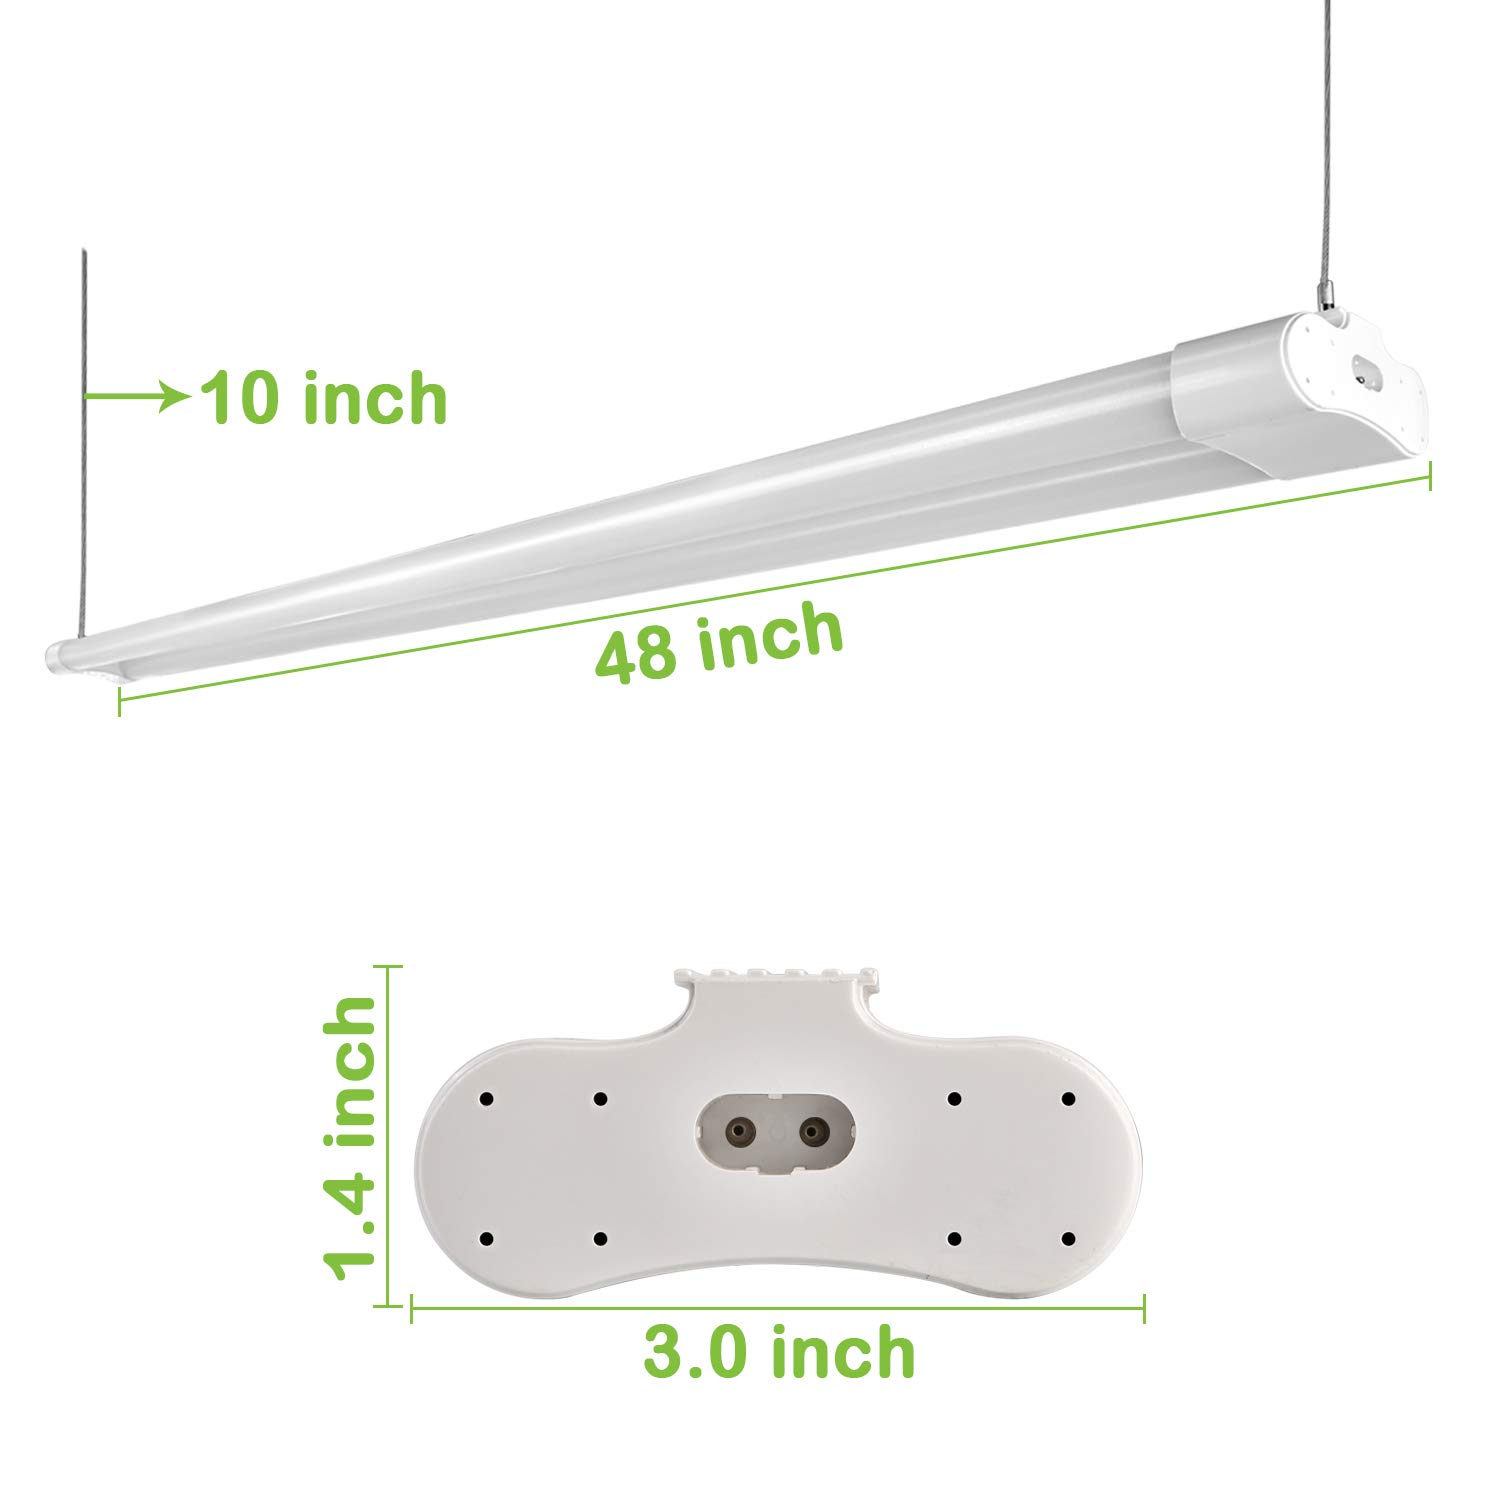 Hykolity 4FT 36W Linkable LED Shop Light With Cord, 3600lm